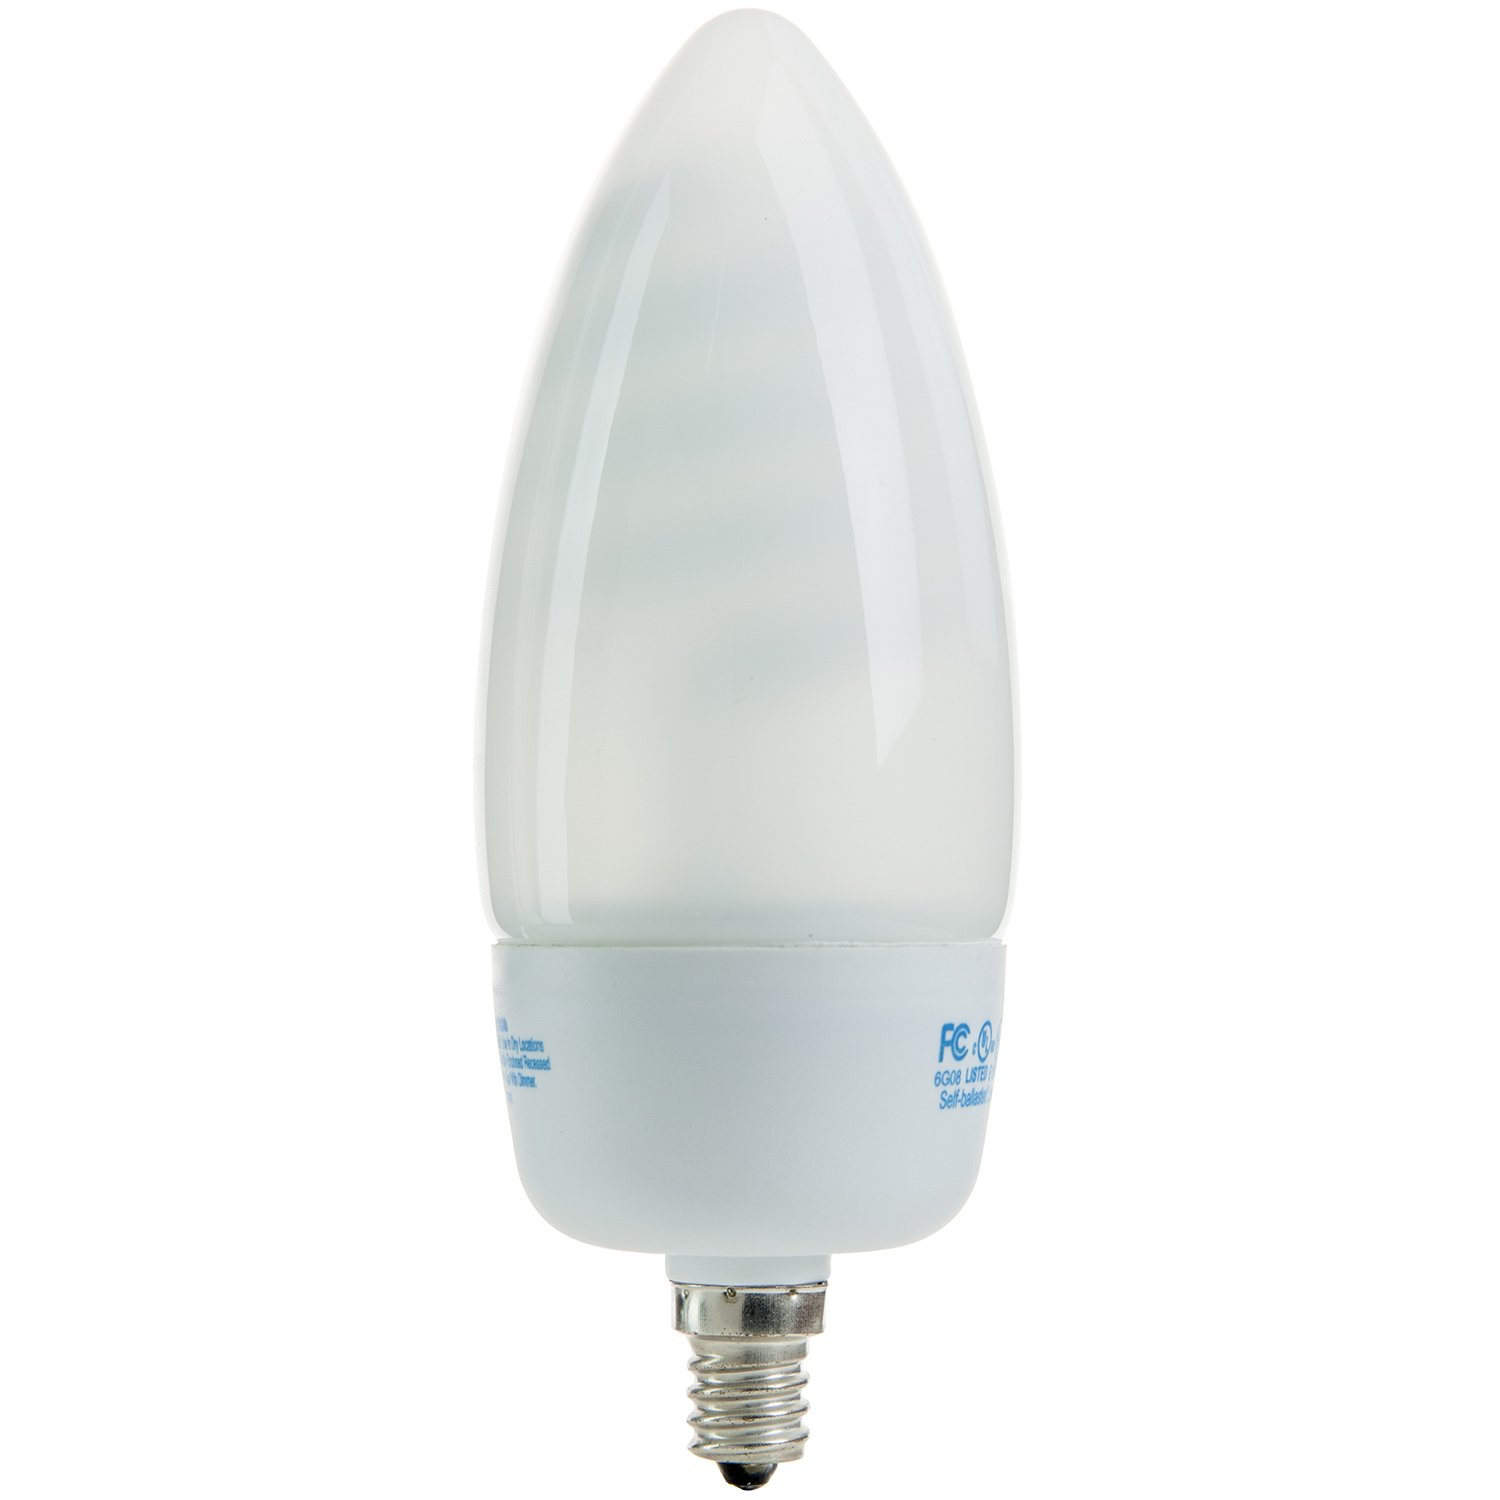 Sunlite slc14tw27k 14 watt white torpedo tip chandelier energy sunlite slc14tw27k 14 watt white torpedo tip chandelier energy saving cfl light bulb candelabra base warm white compact fluorescent bulbs amazon arubaitofo Gallery